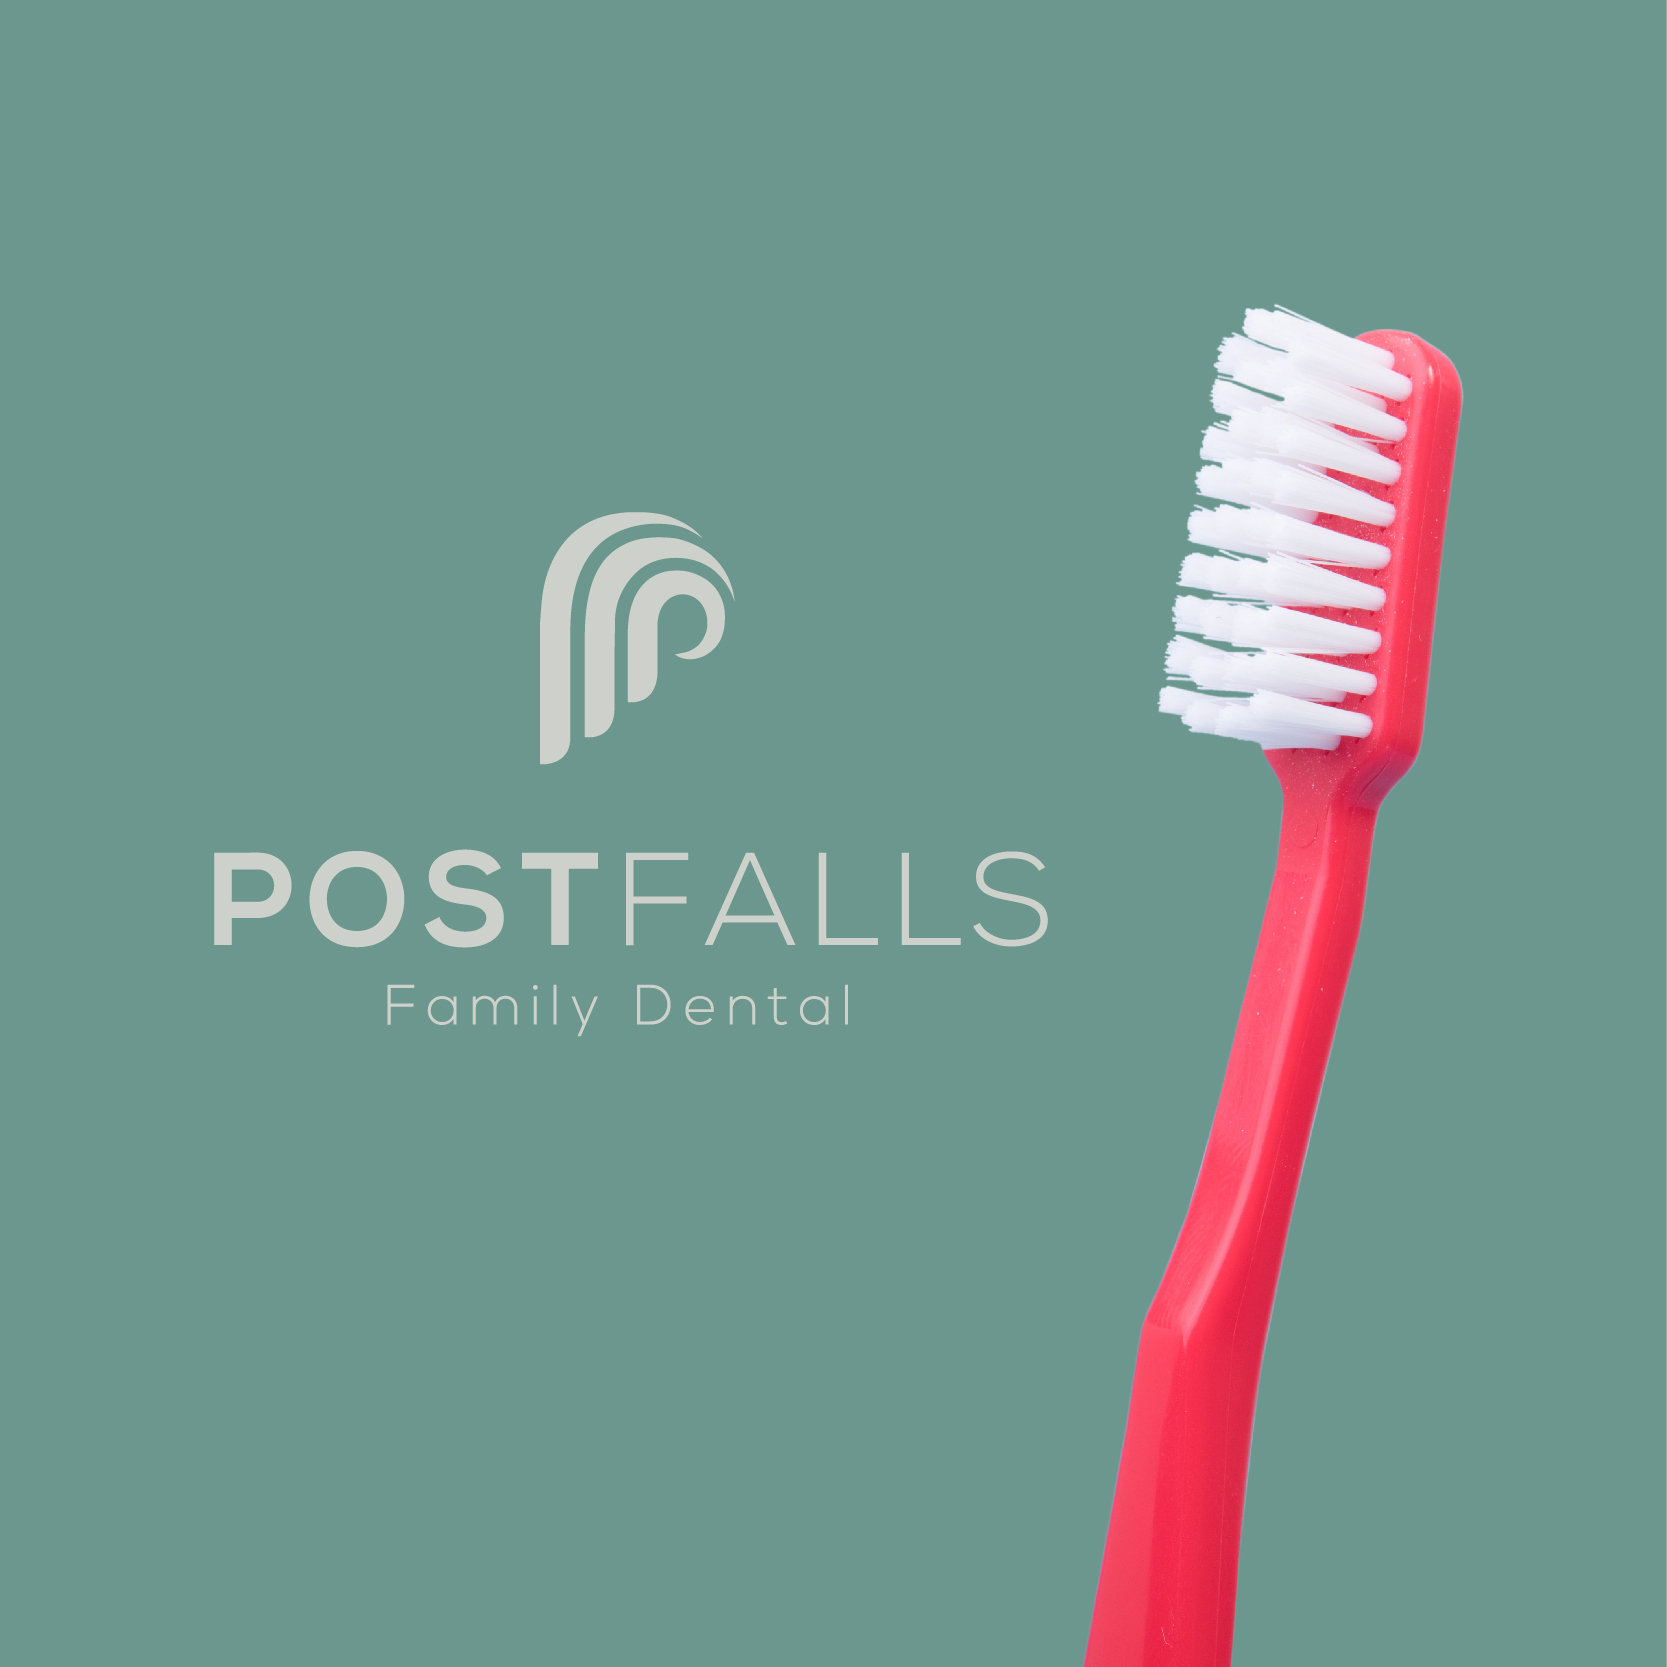 Post Falls Family Dental Case Study Image